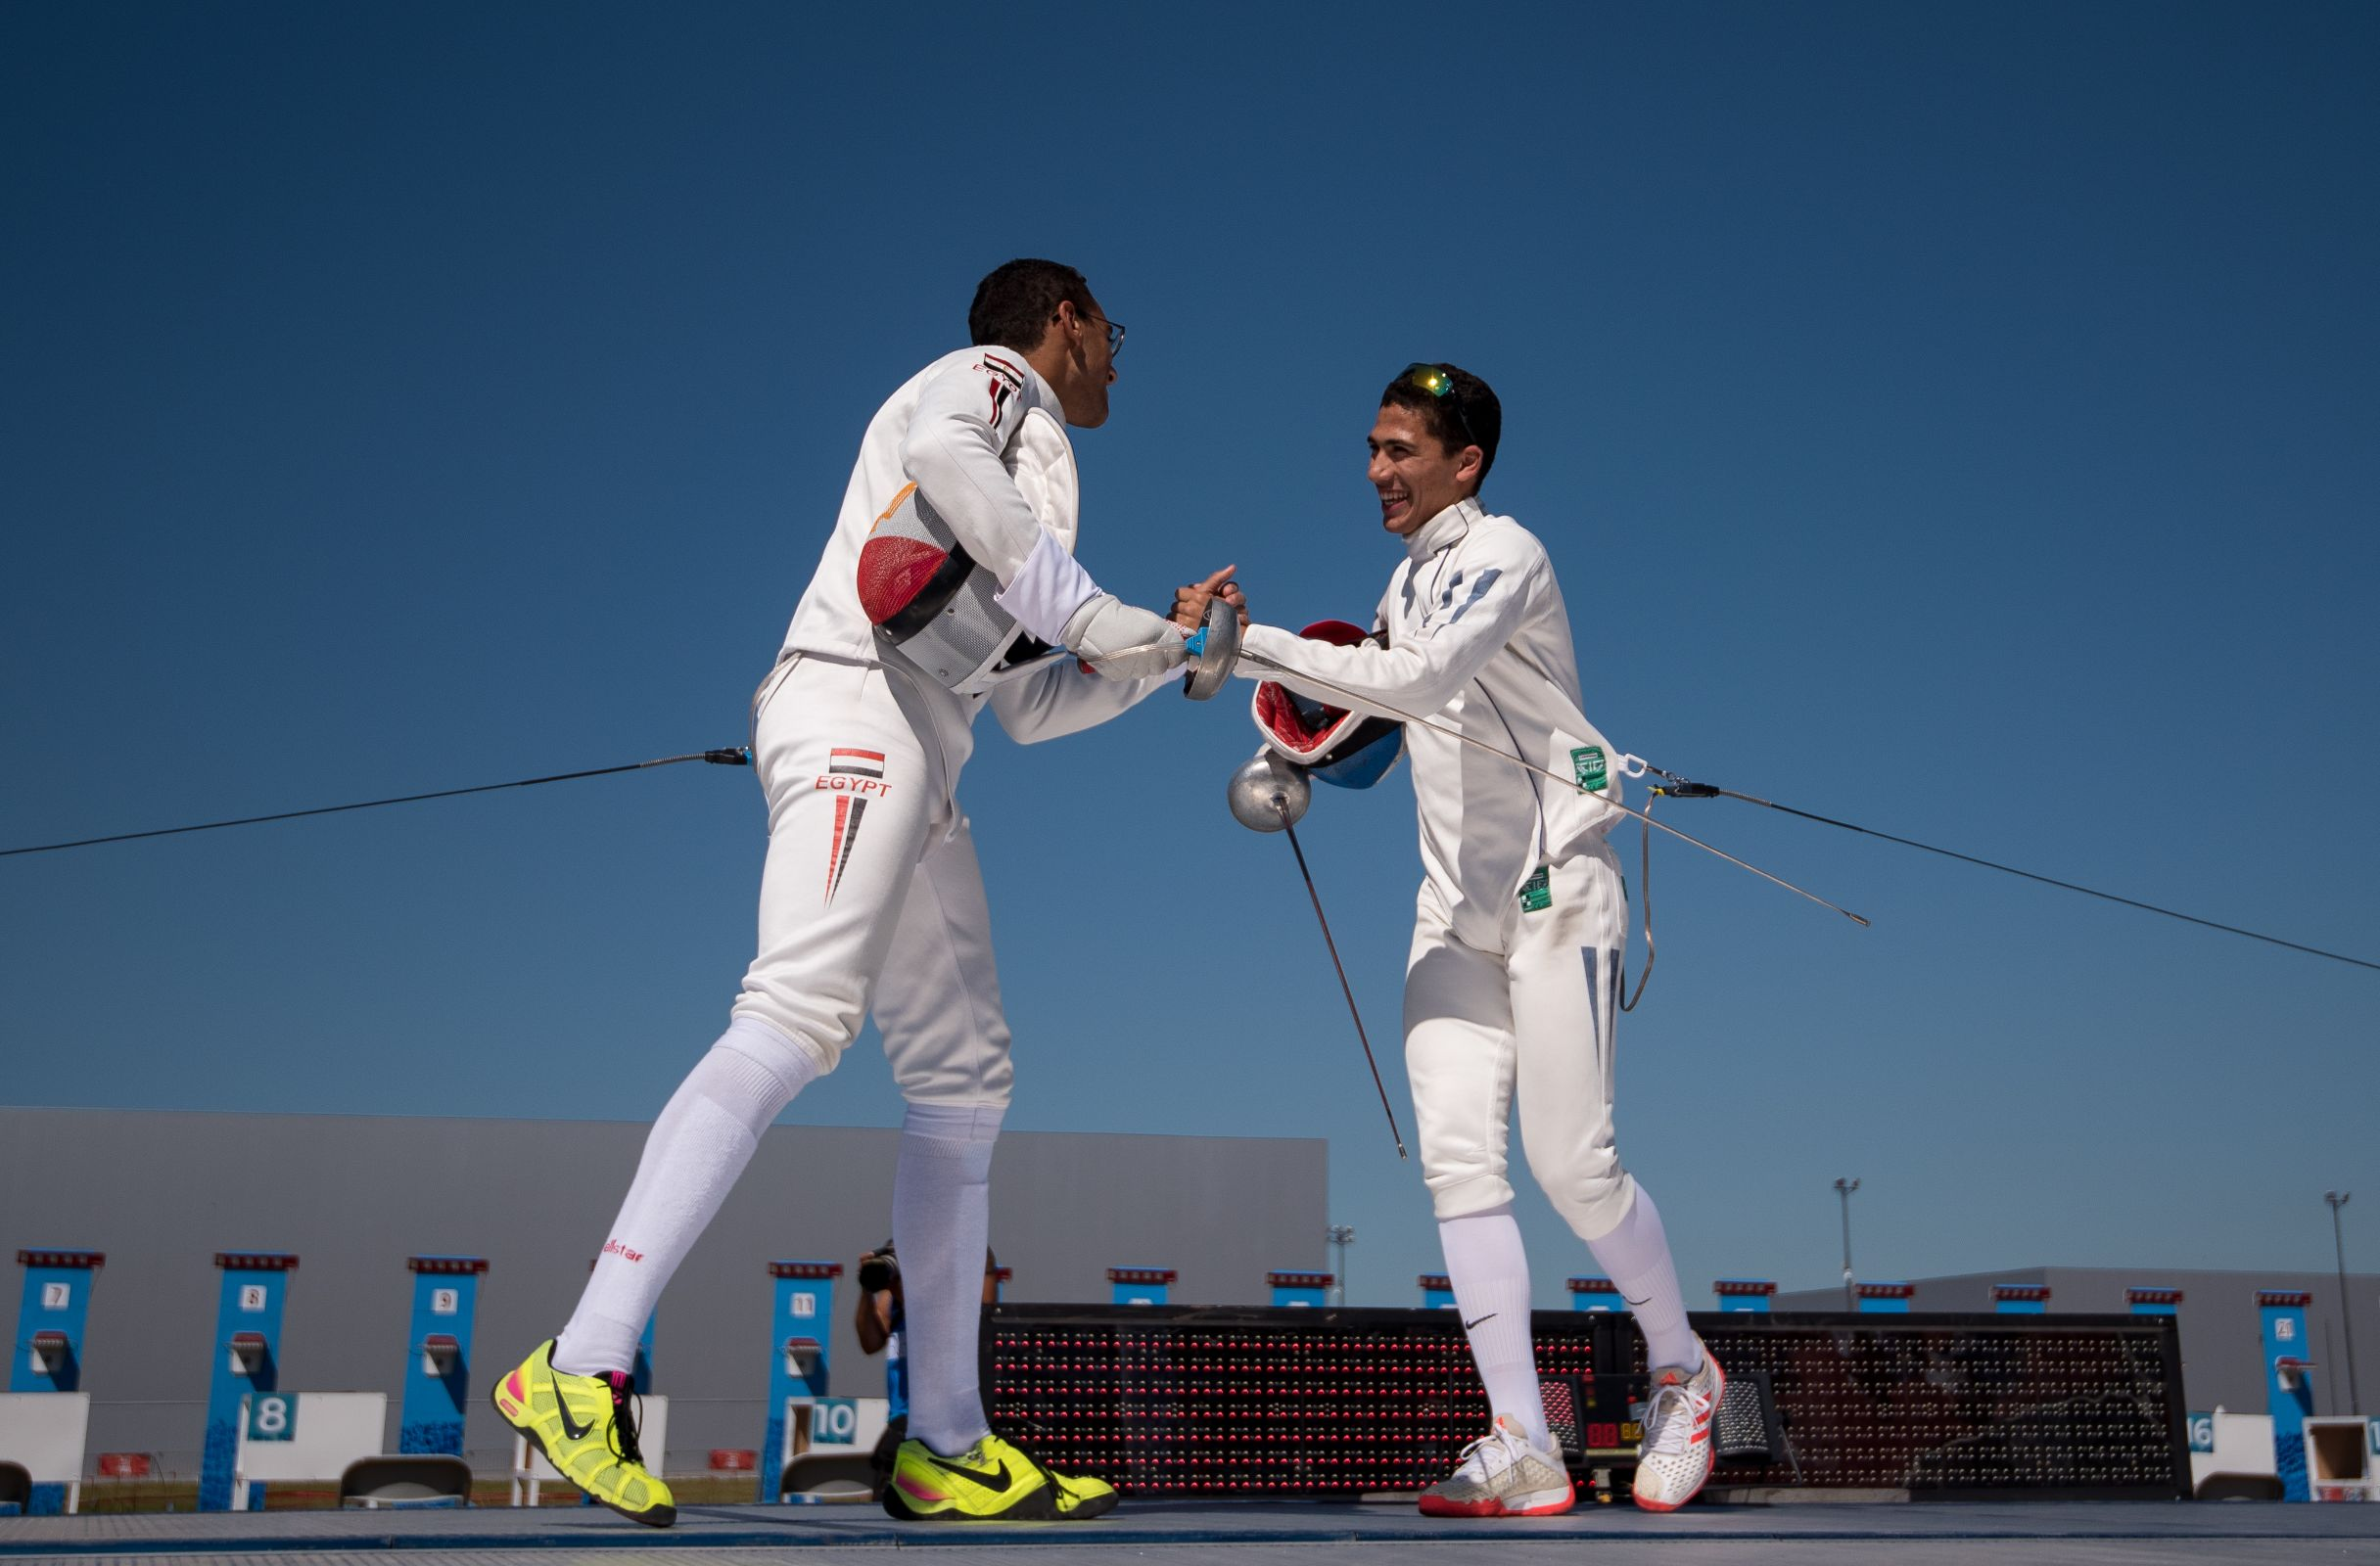 Buenos Aires 2018 - Modern Pentathlon - Mixed International Team Relay